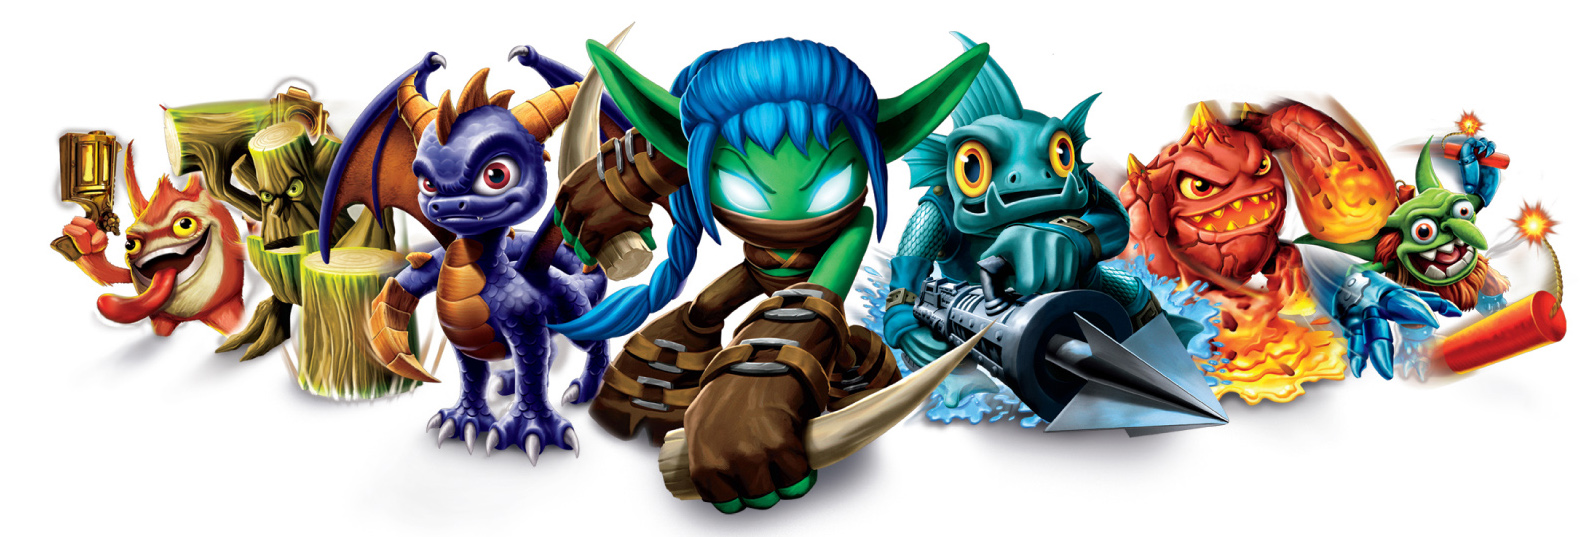 Skylanders - The Spyro Wiki - Spyro, Sparx, The Legend Of ...